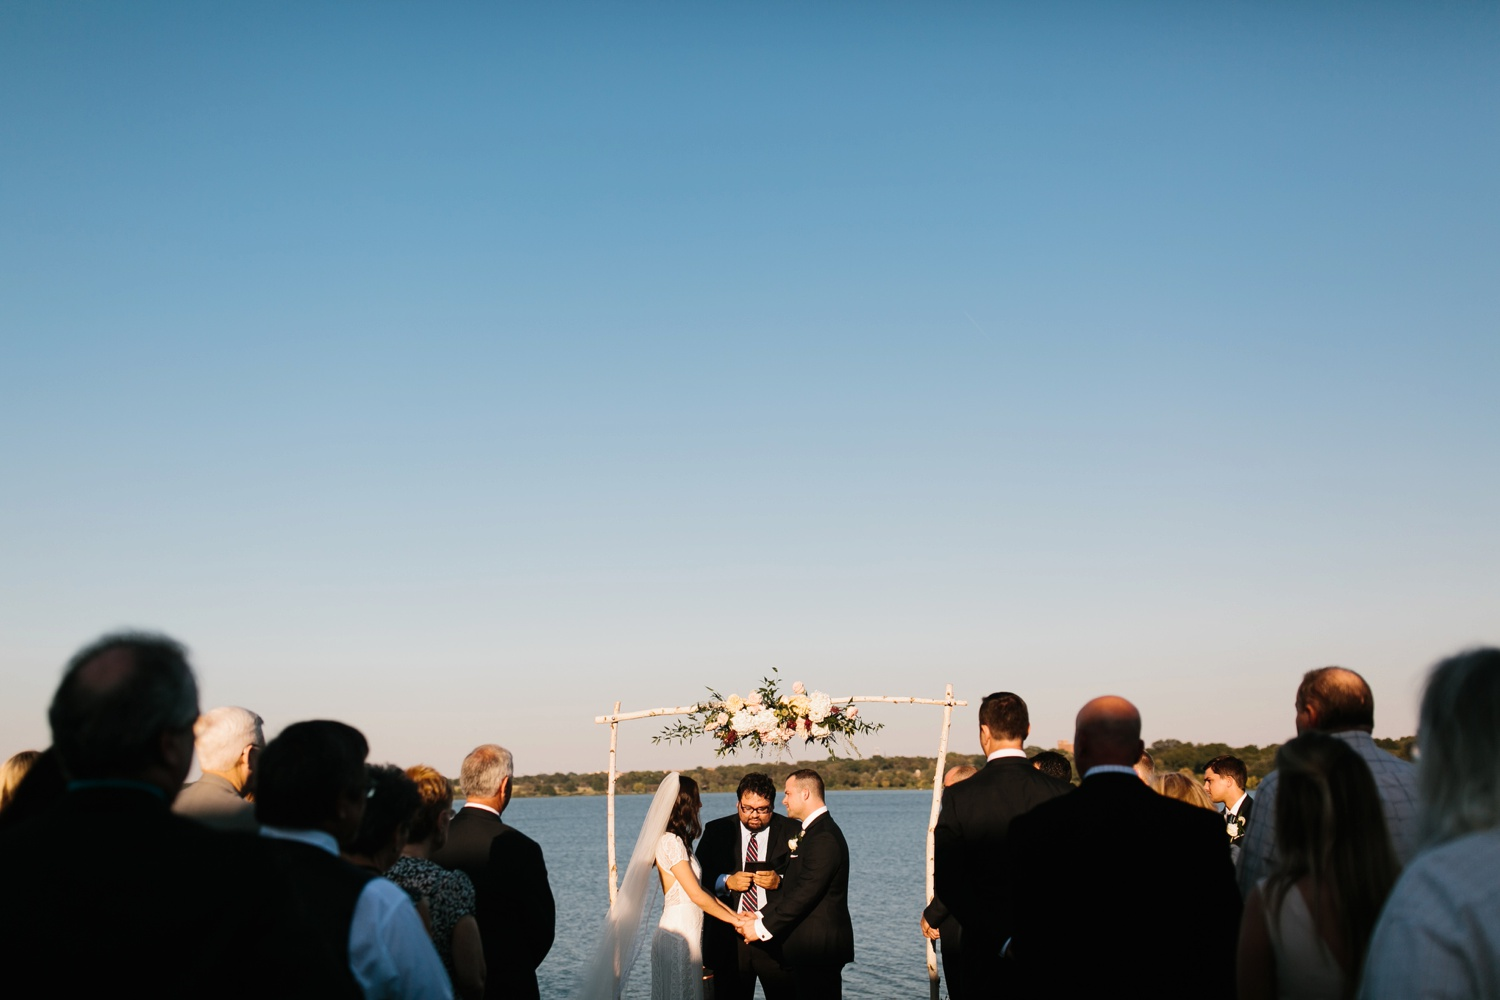 Kadee + Tyler | a raw, emotional wedding at the Filter Building on White Rock Lake in Dallas, TX by North Texas Wedding Photographer, Rachel Meagan Photography 126